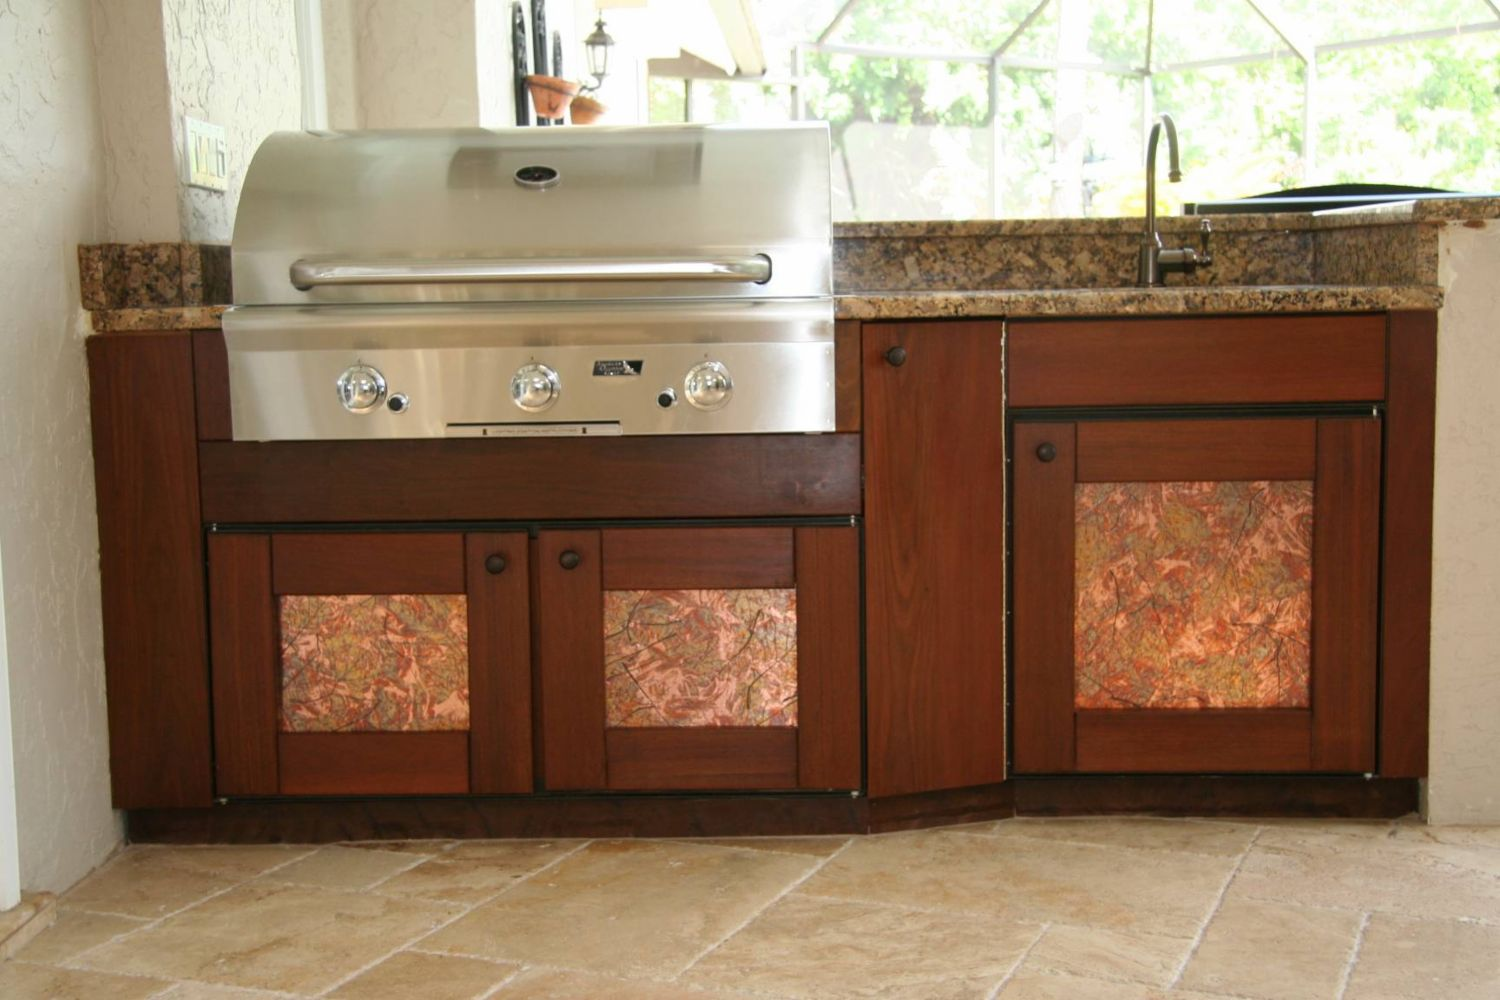 Outdoor kitchen specialists in punta gorda fl lifestyle for Lifestyle kitchen units